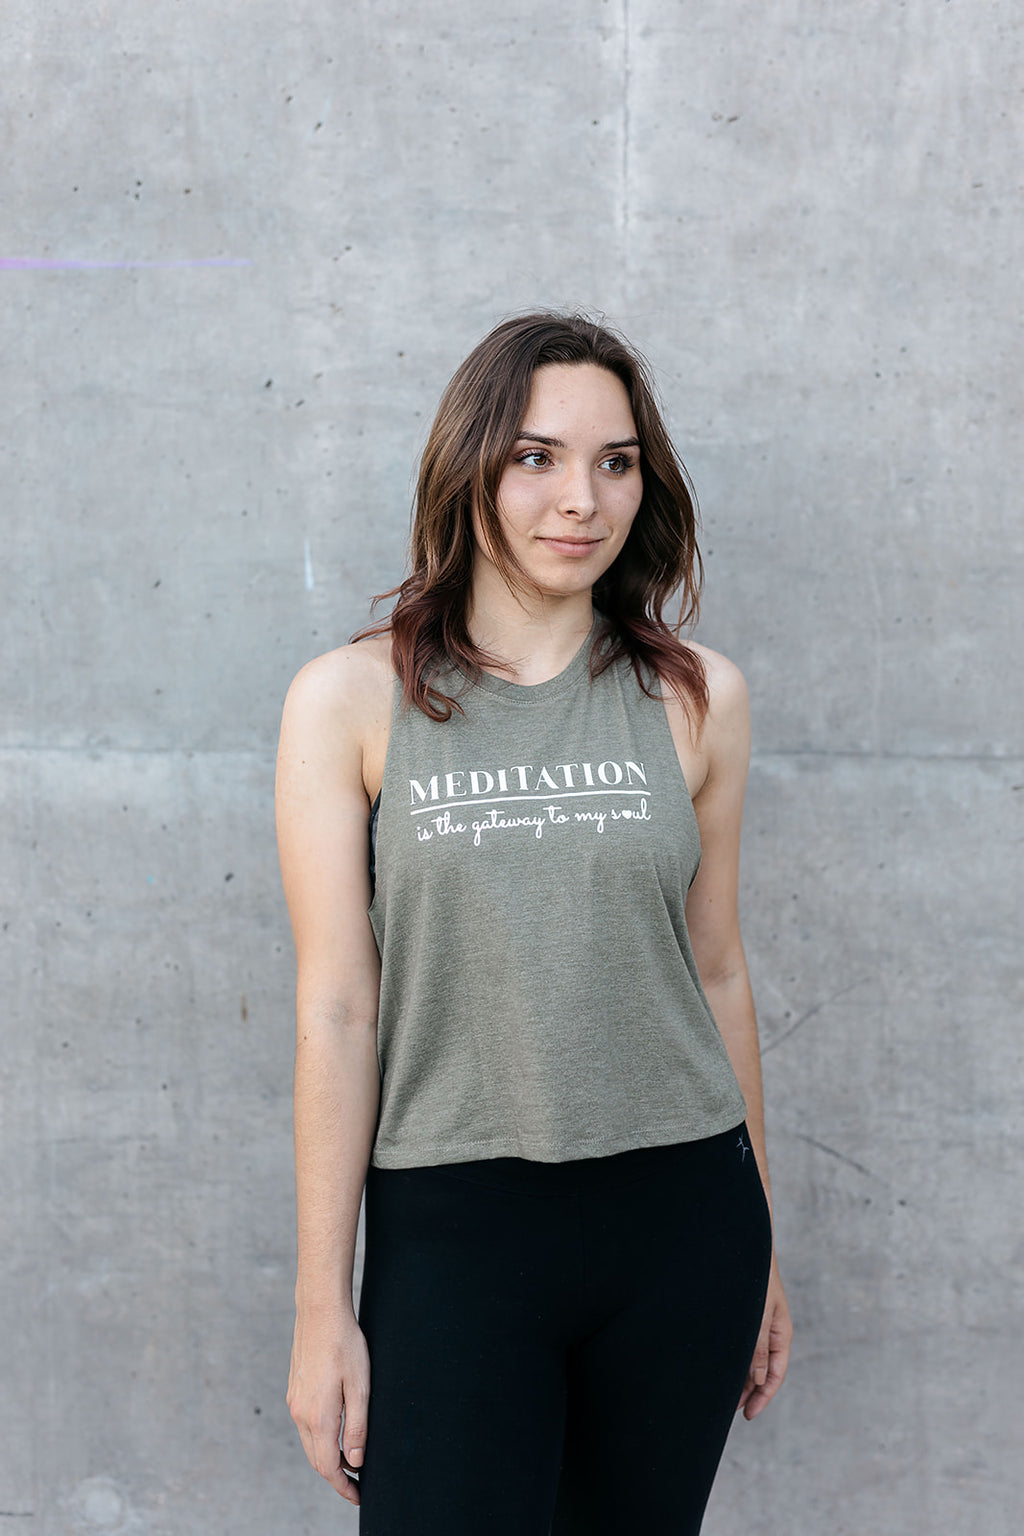 Meditation Is The Gateway To My Soul Crop Tank - everlur spiritual clothing